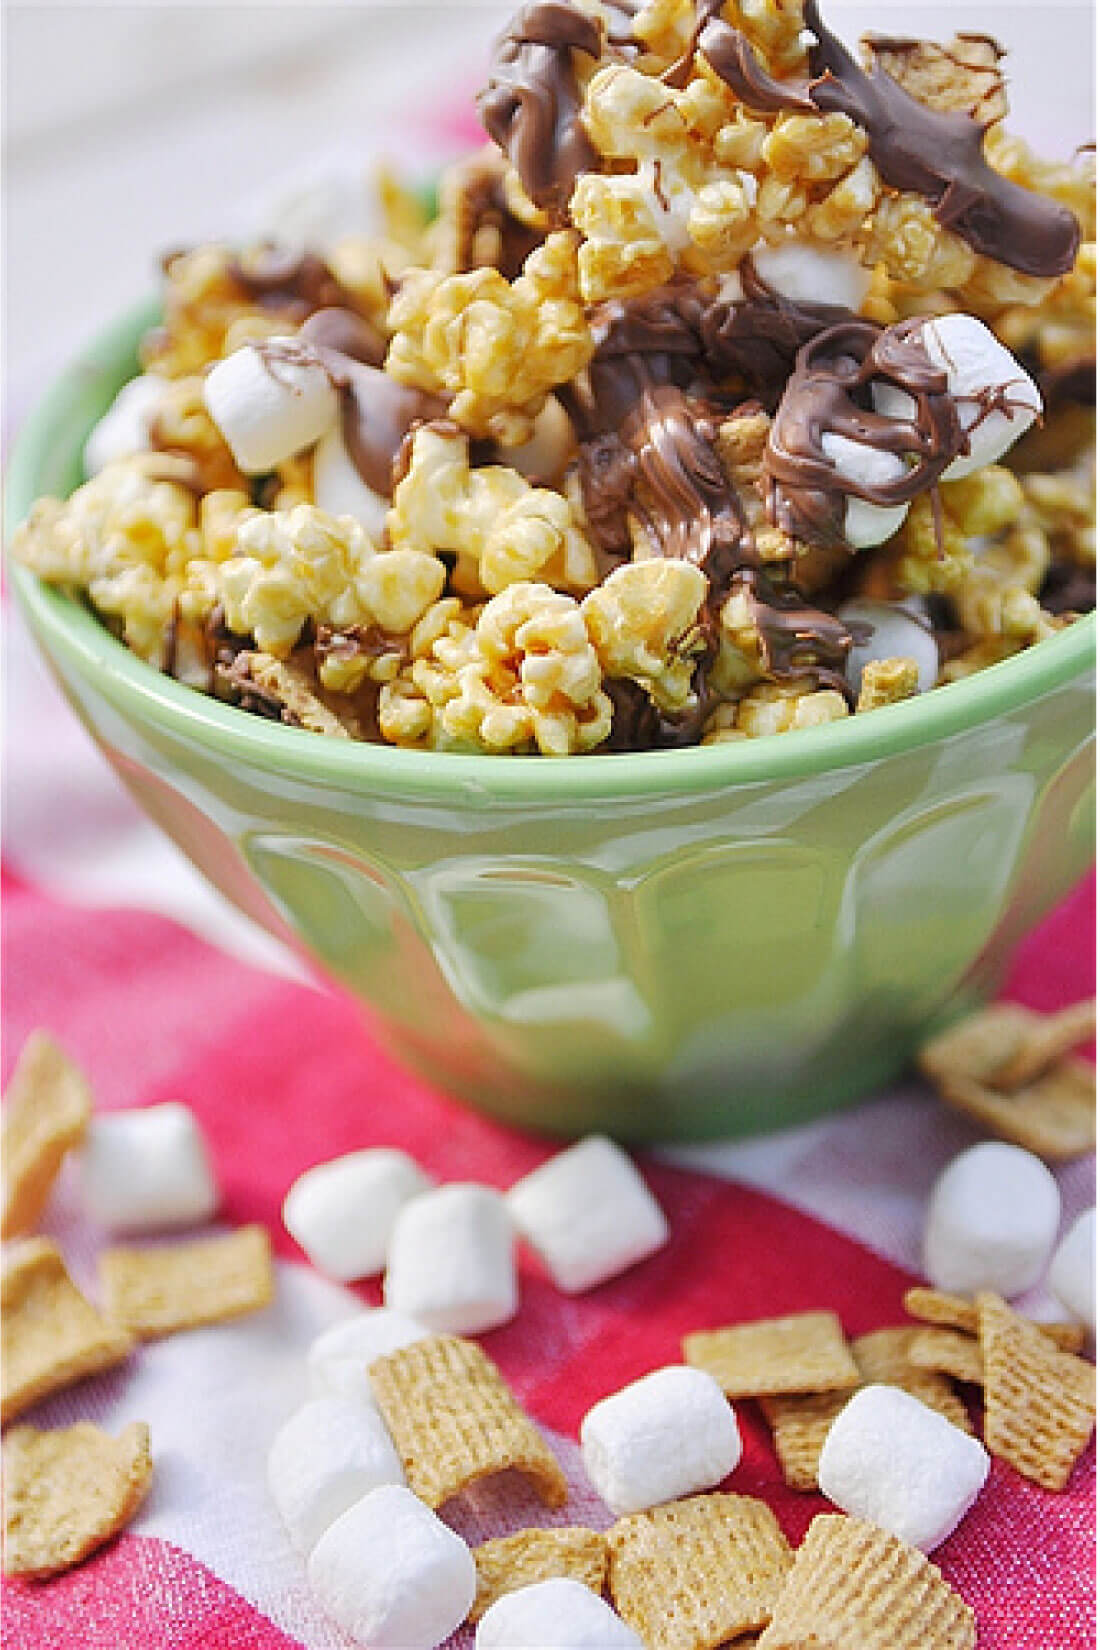 Take traditional Caramel Popcorn to the next level with this S'mores version!